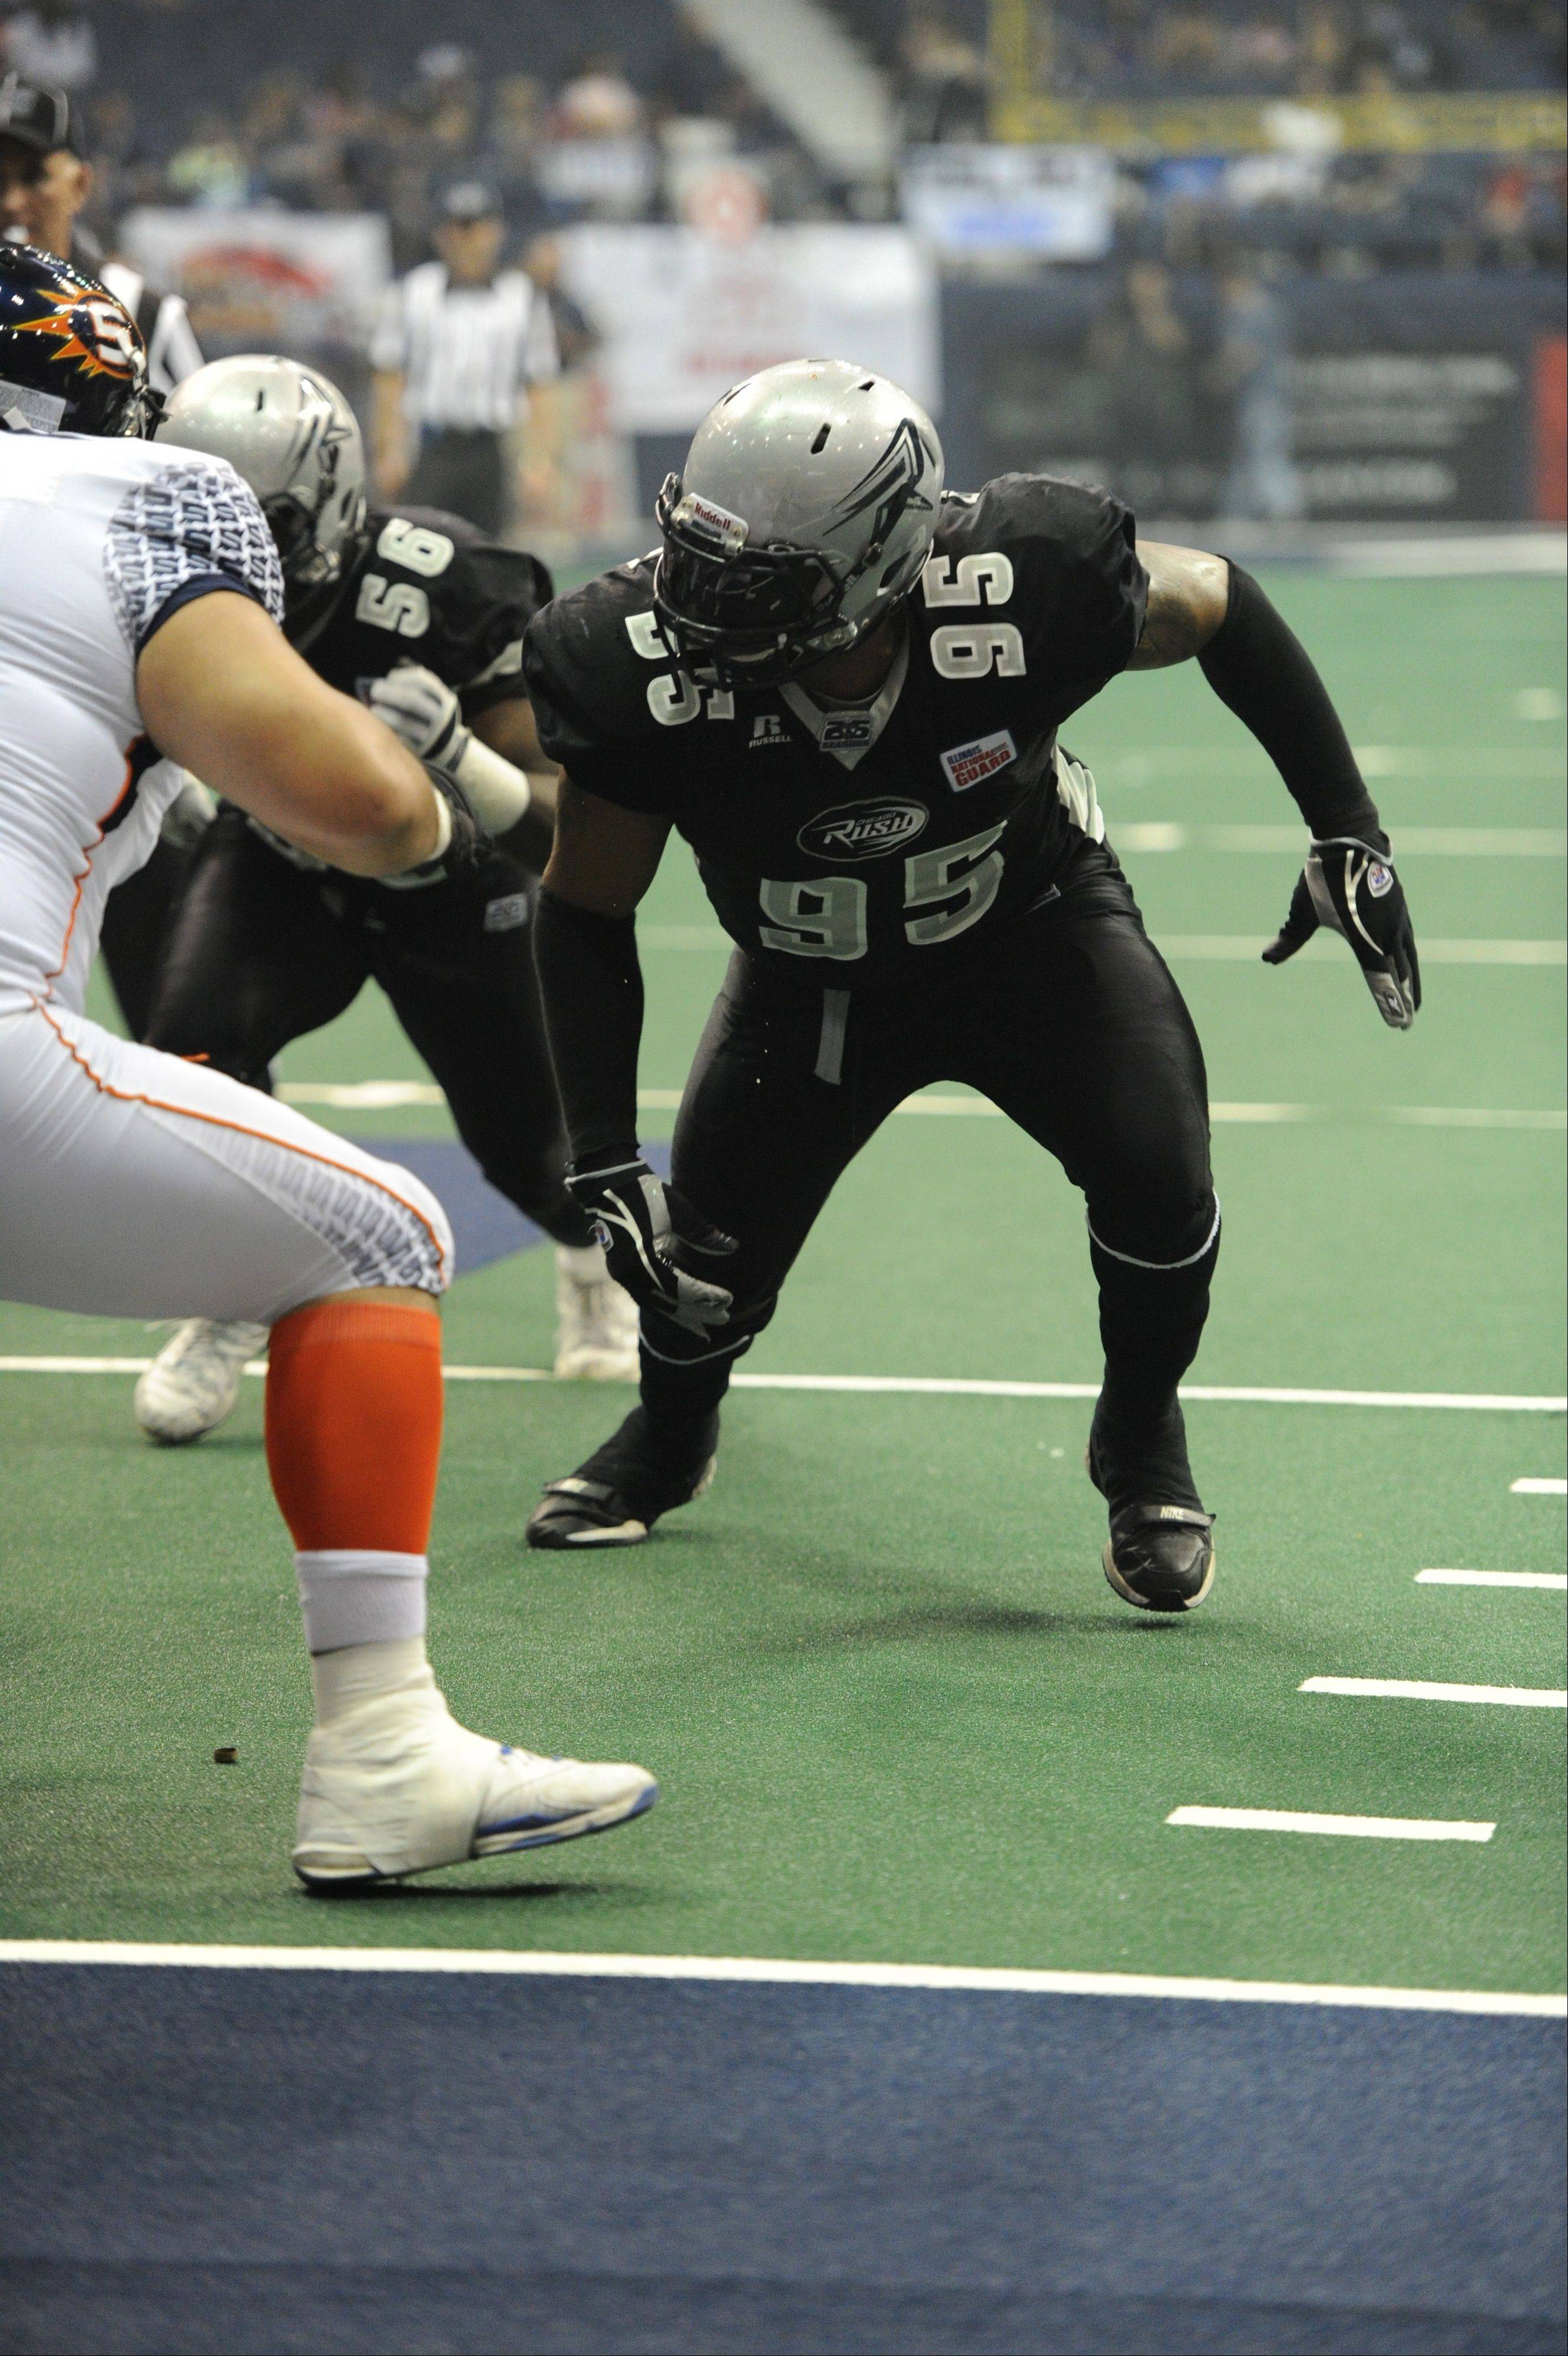 Defensive lineman Jeffrey Fitzgerald and the rest of the Chicago Rush defense came up big against the Georgia Force last week, intercepting 3 passes and forcing 4 turnovers on downs.